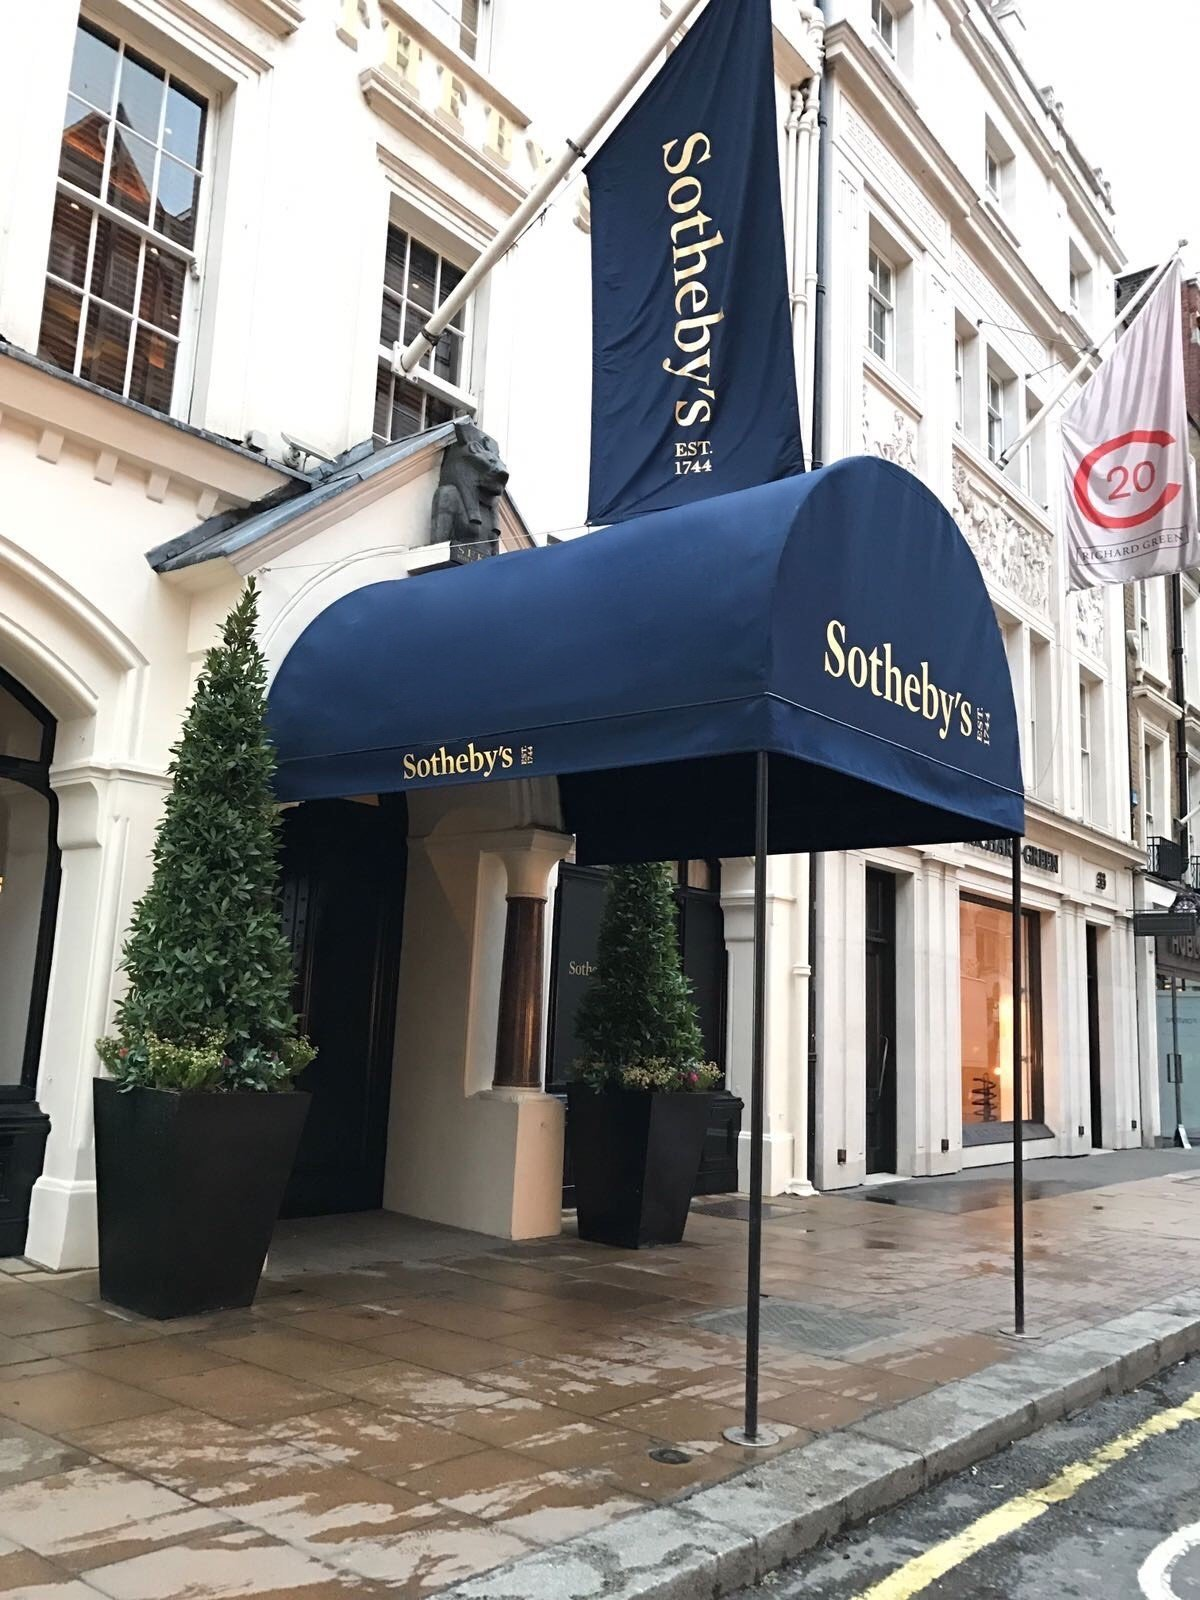 Sotheby's awning 1b